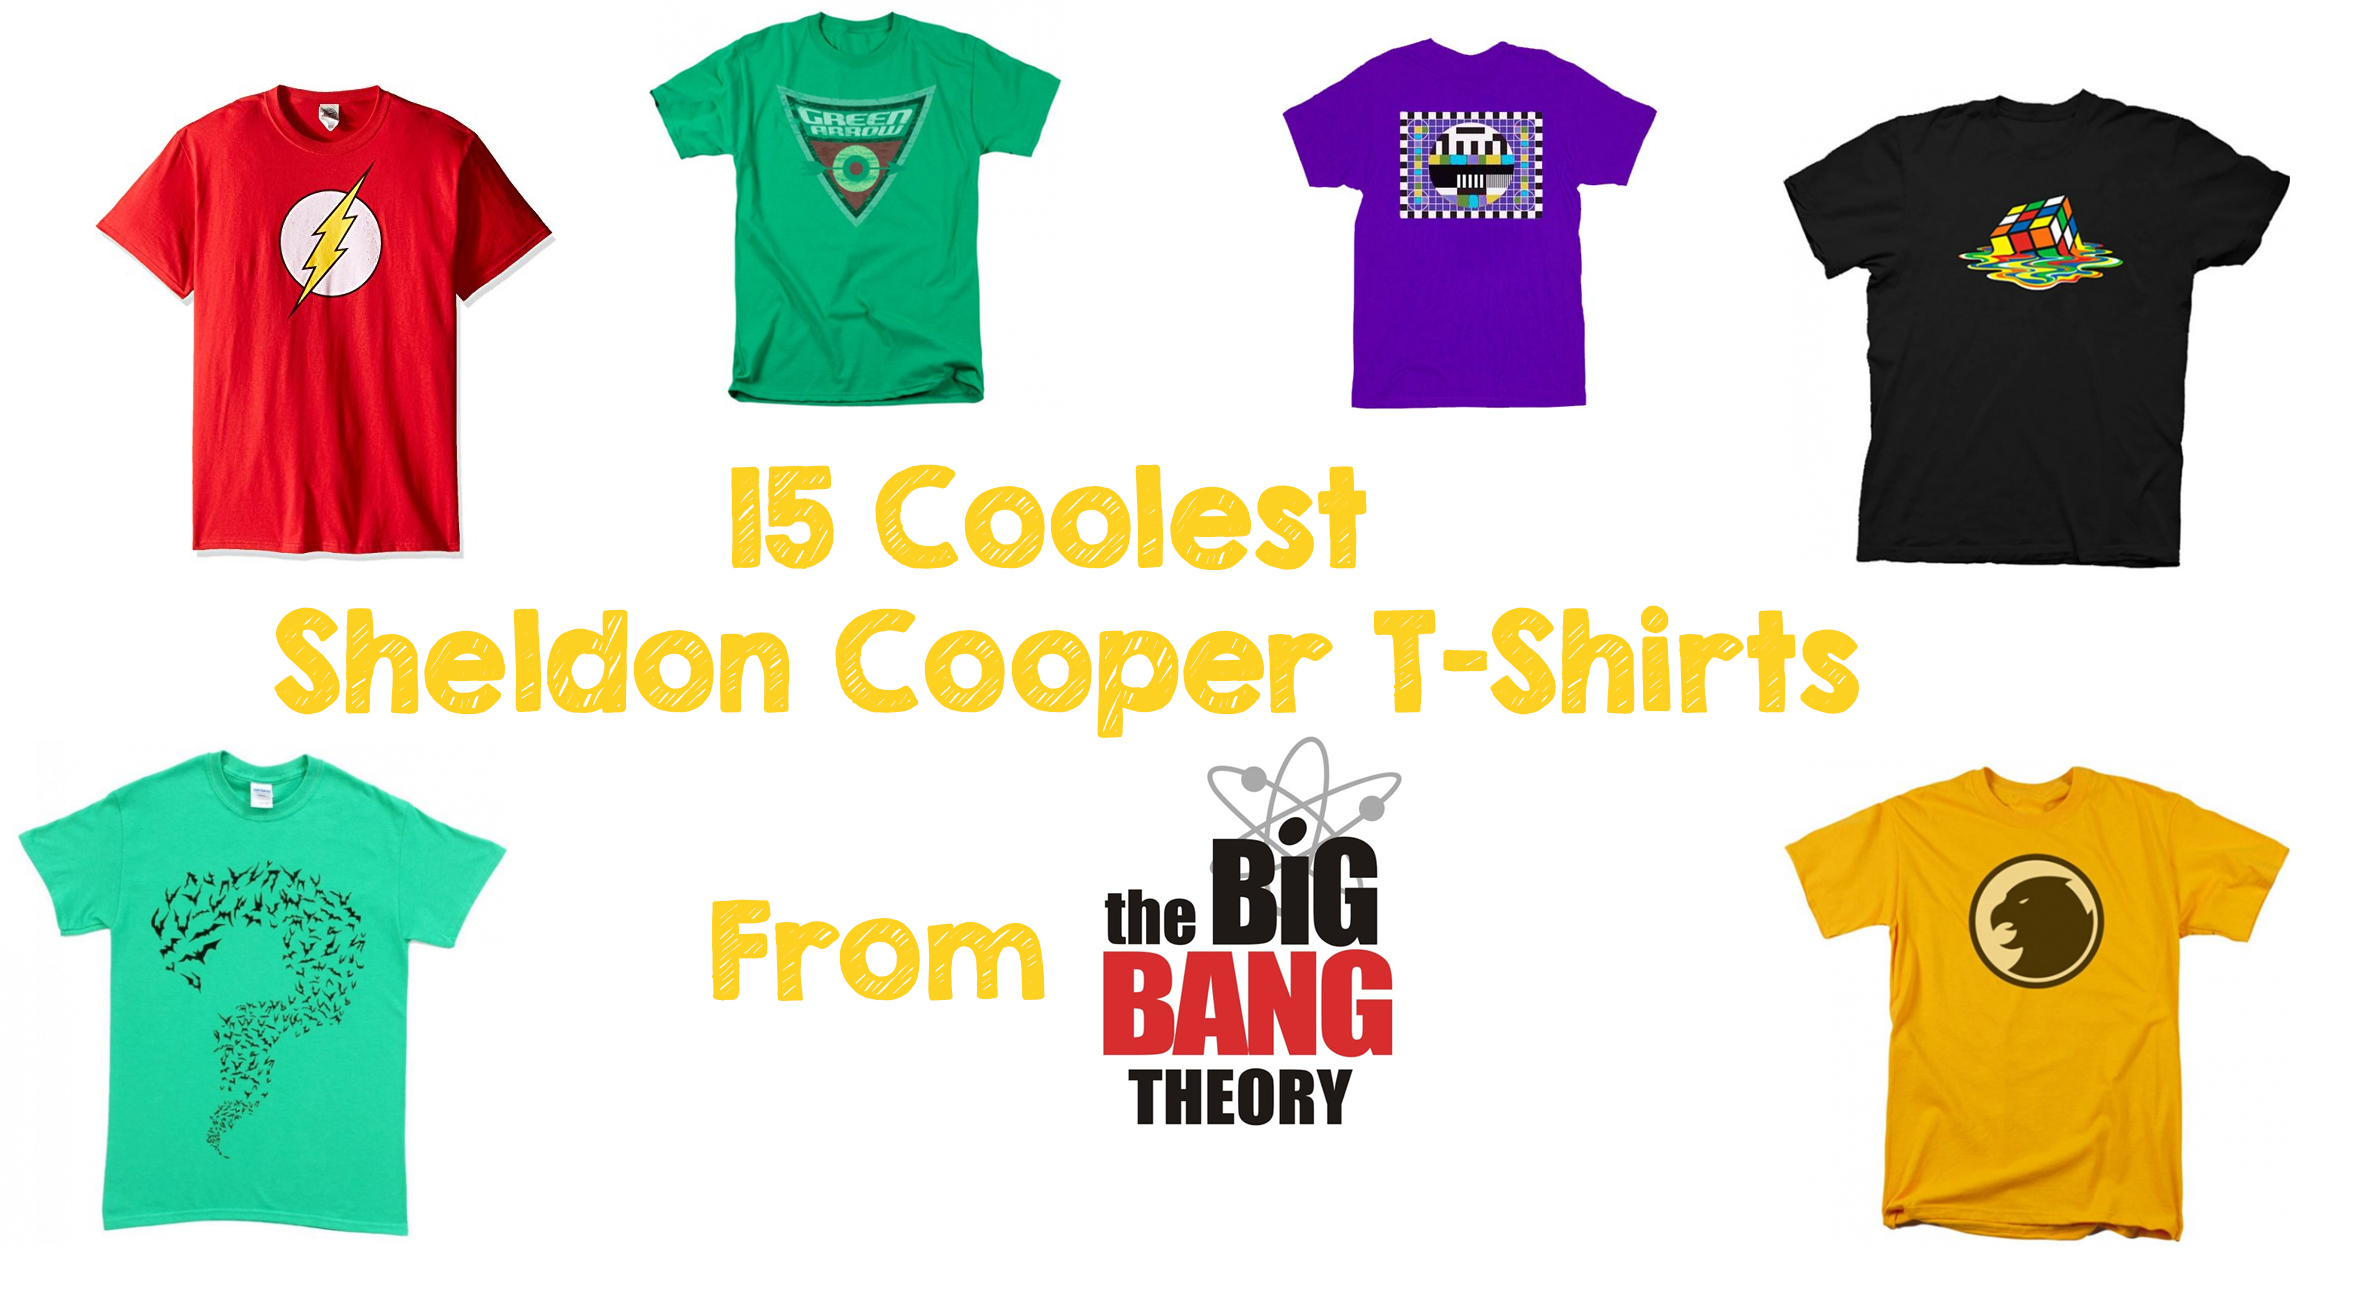 15 Coolest Sheldon Cooper T-Shirts From The Big Bang Theory